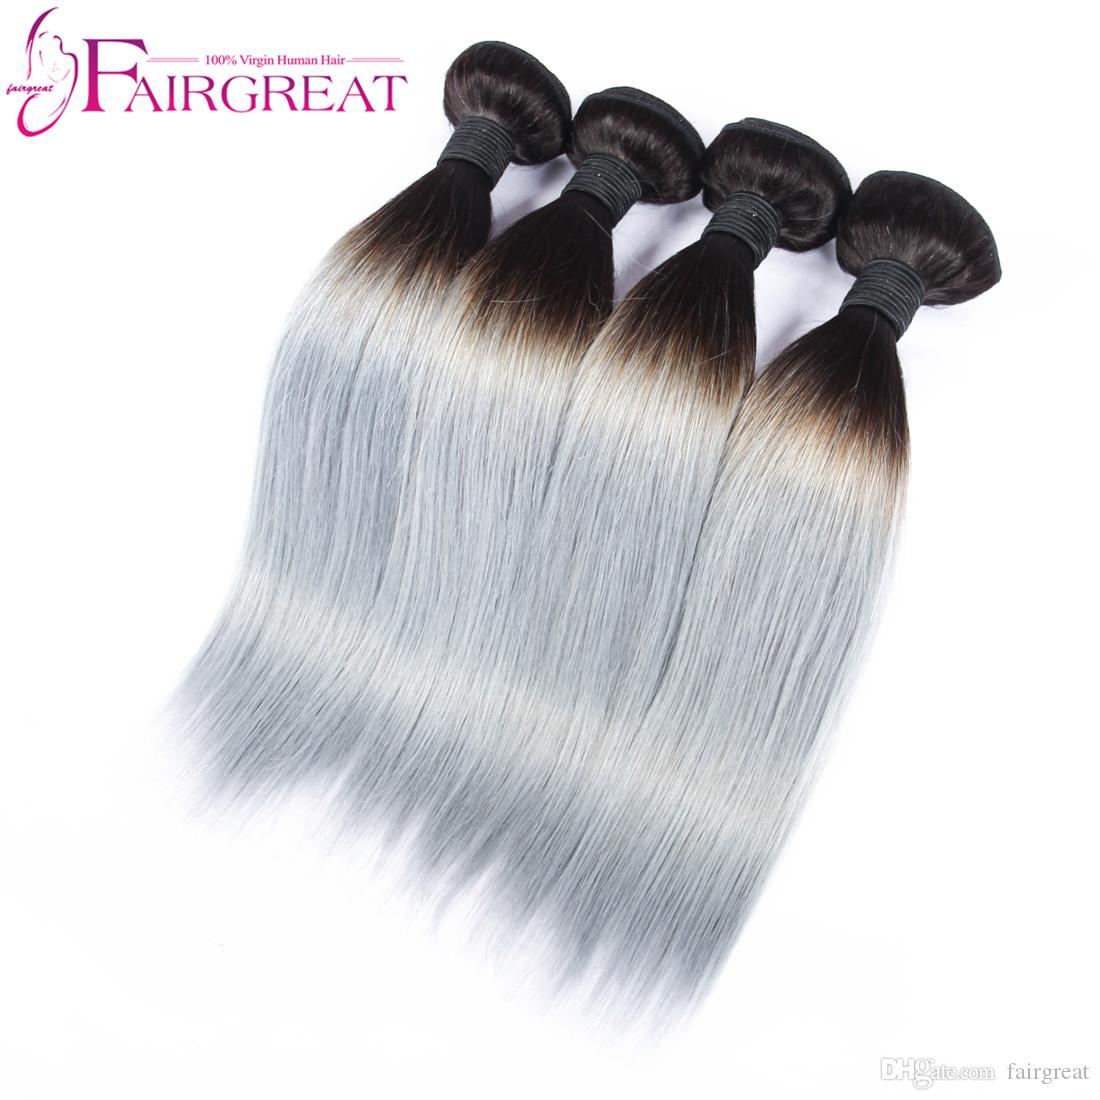 Fairgreat mbre human hair weave Straight 1B&Sliver Grey two tone color Hair weft 10~20inch Brazilian Peruvian Malaysian Indian hair Wave